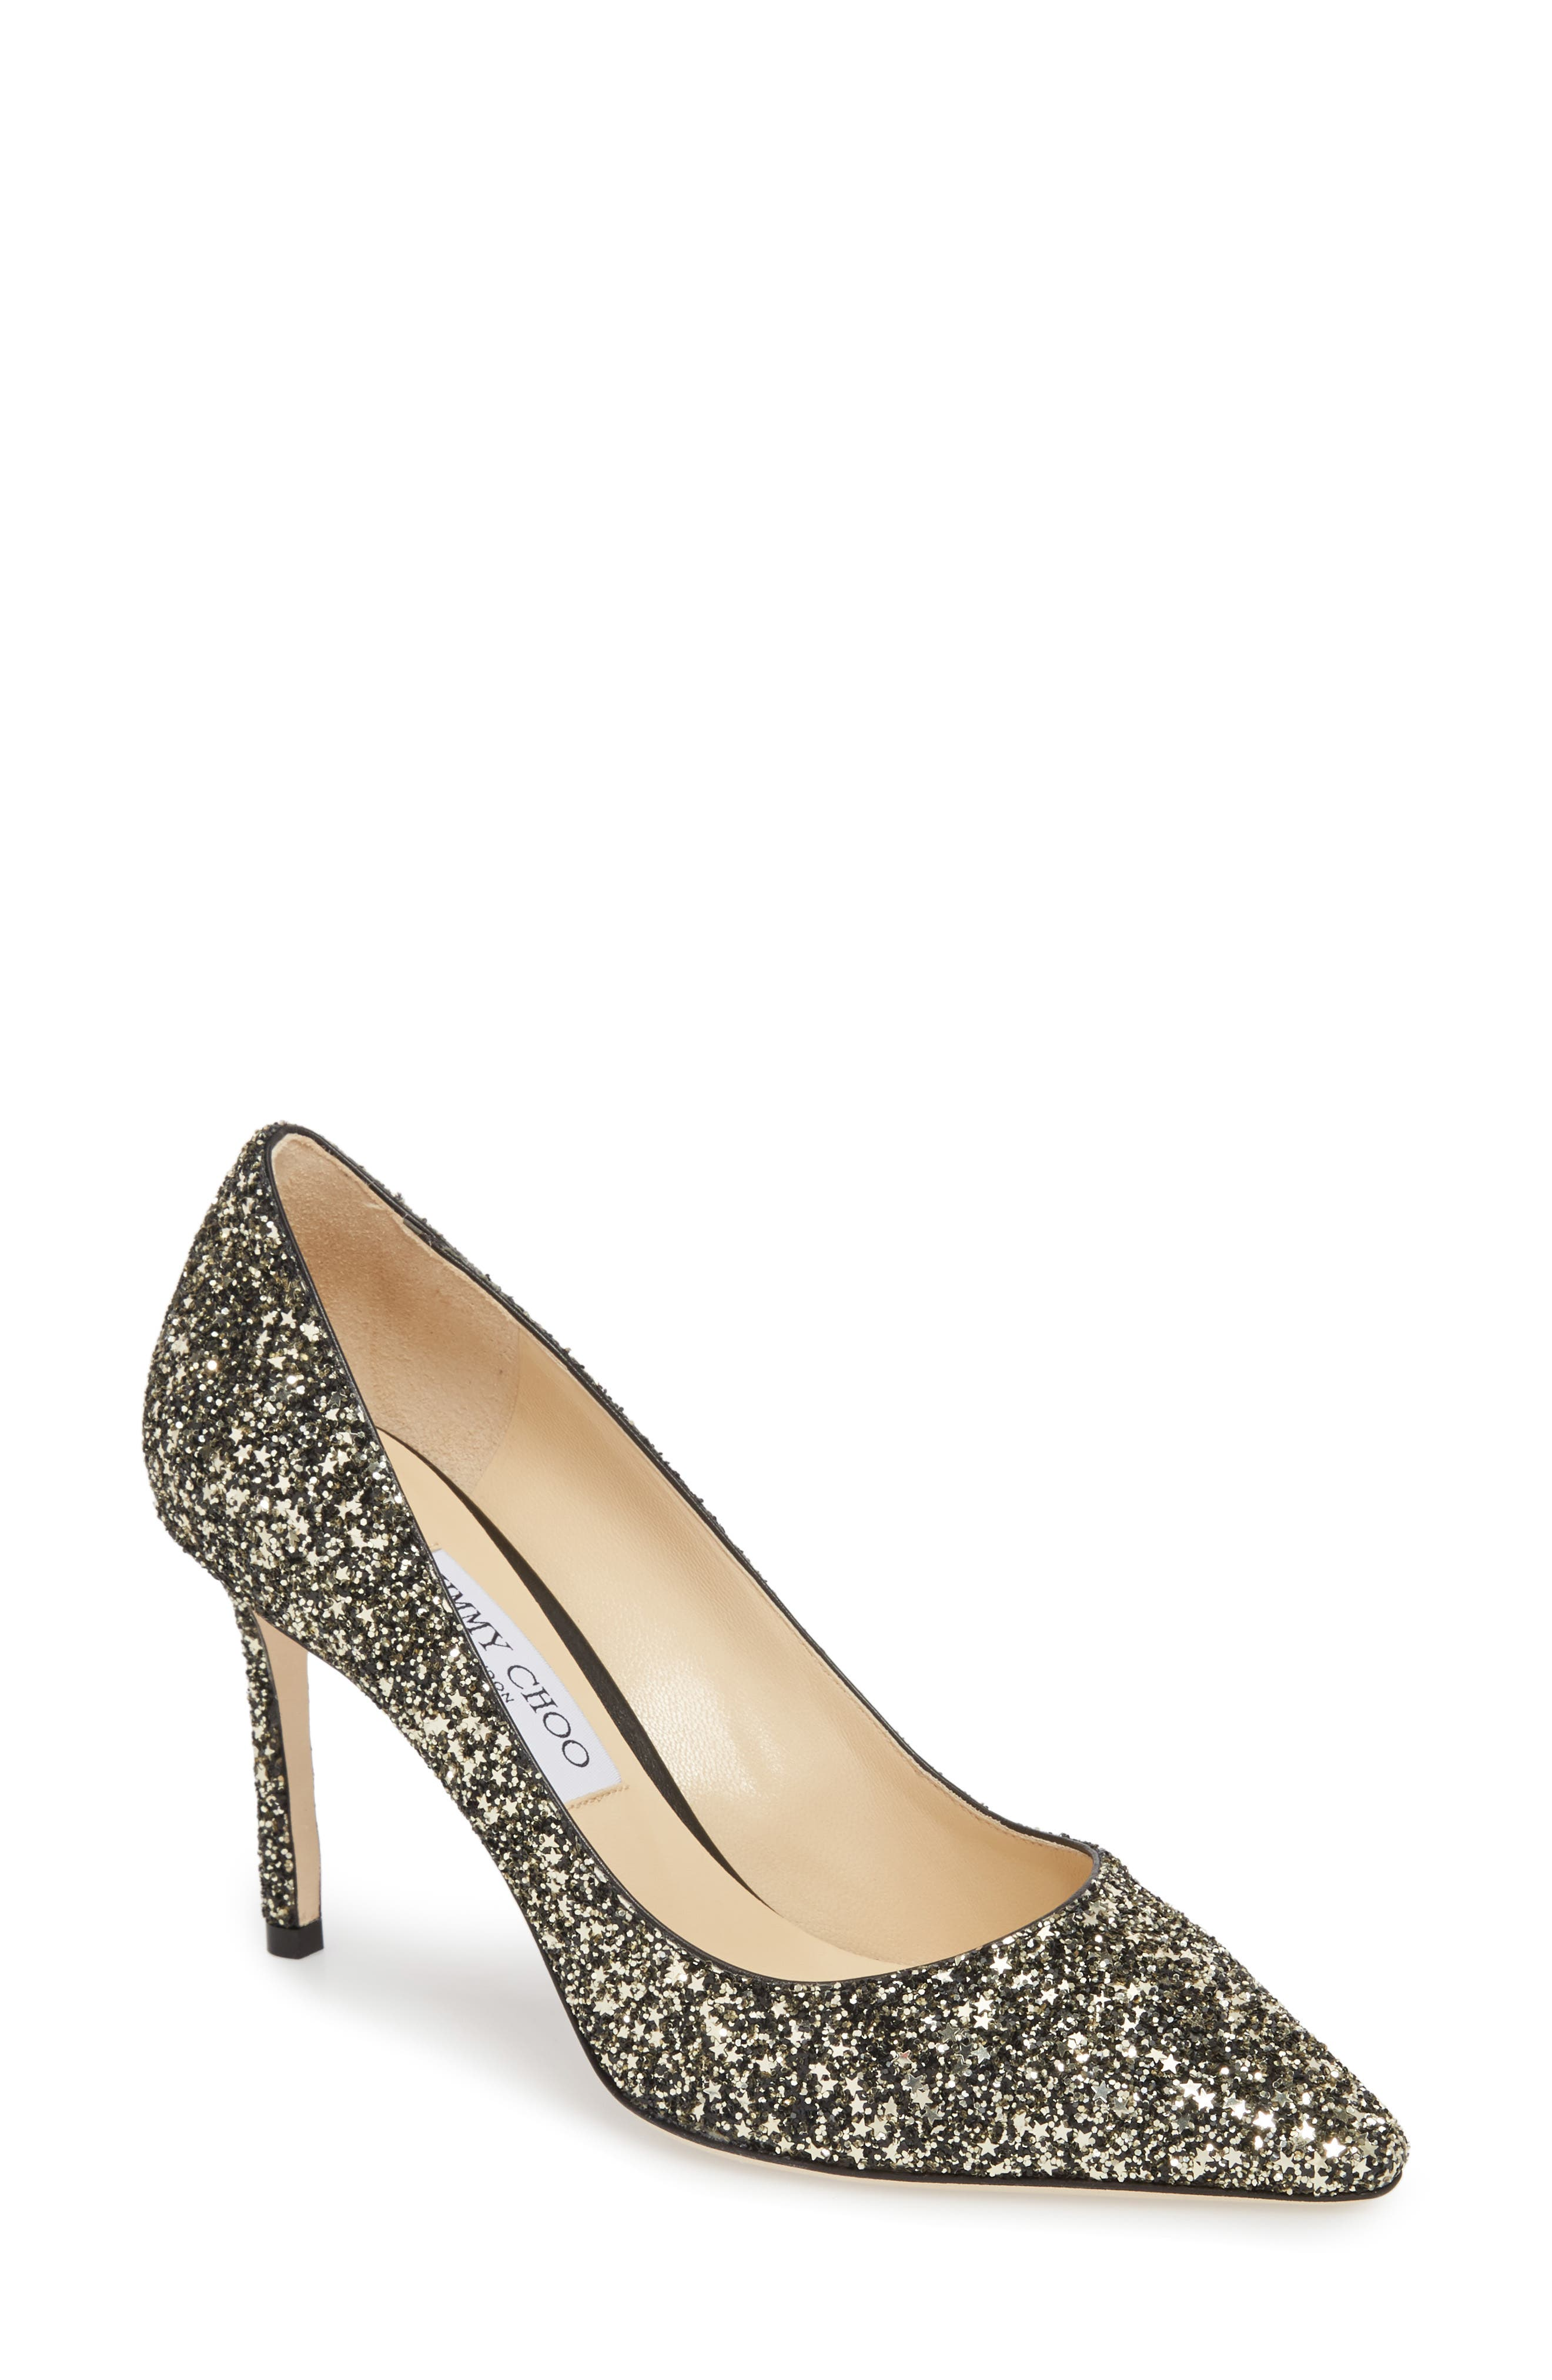 503995545f2b coupon for silver jimmy choo sandals fd408 355b0; free shipping jimmy choo  romy glitter pointy toe pump women f0618 1c103